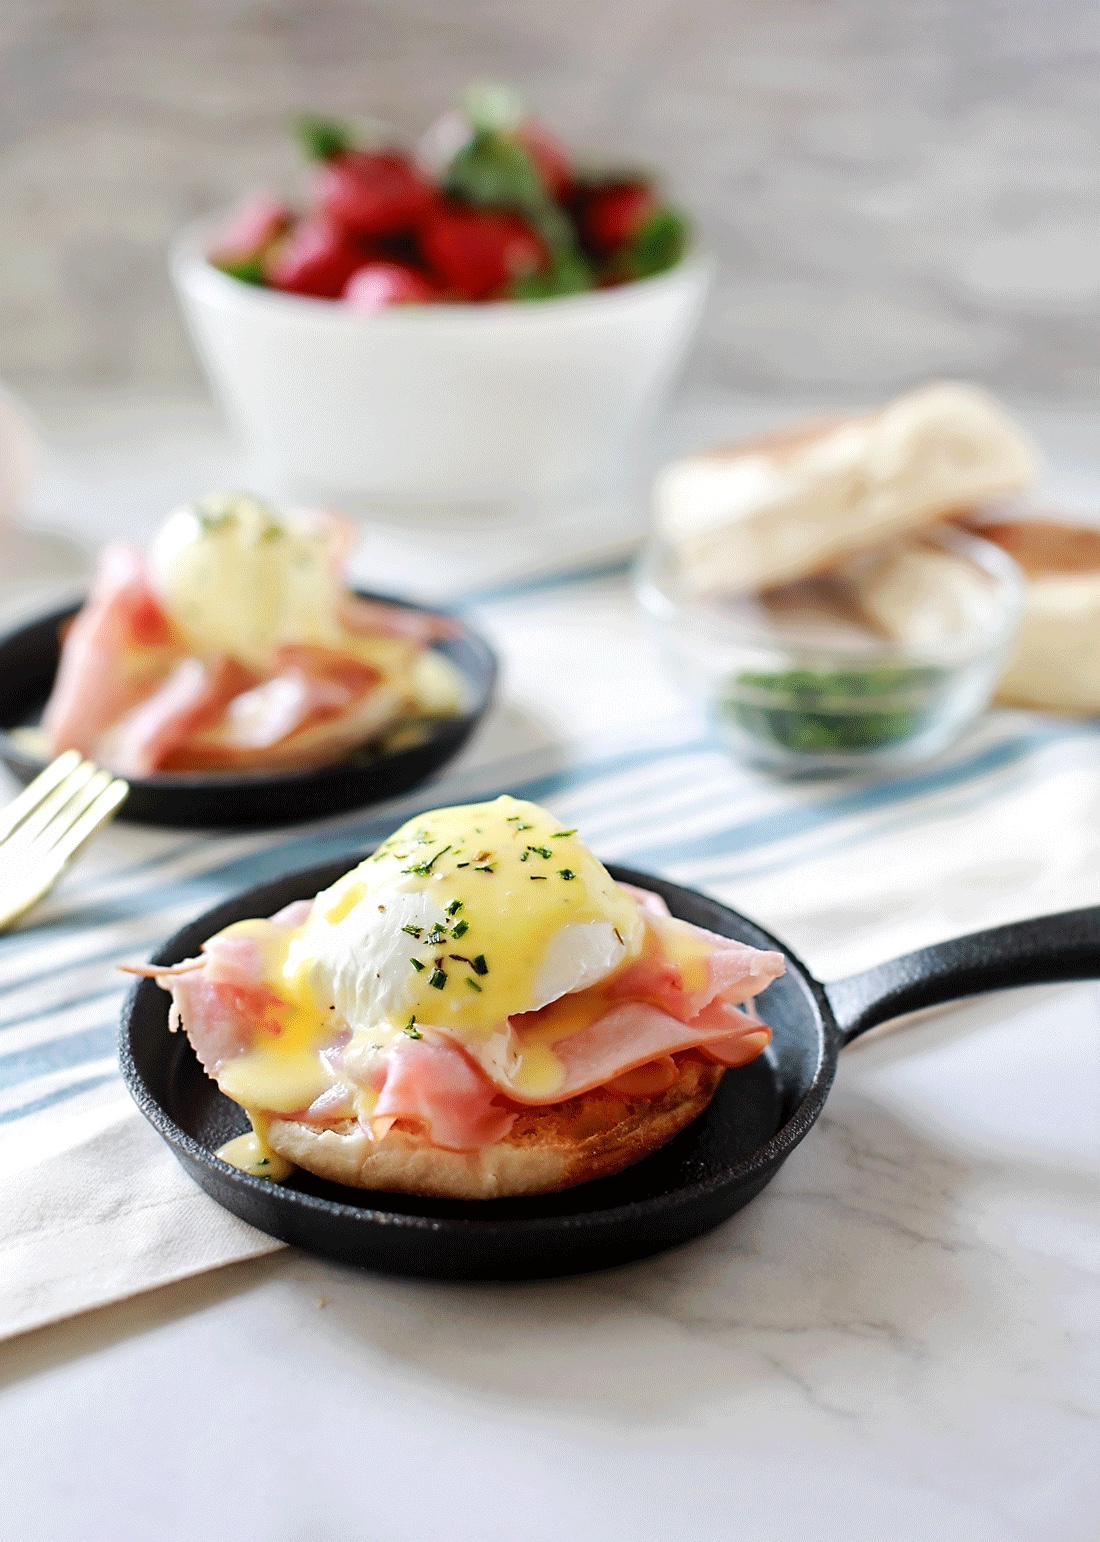 Gourmet made simple recipe for blender hollandaise and eggs Benedict recipe.